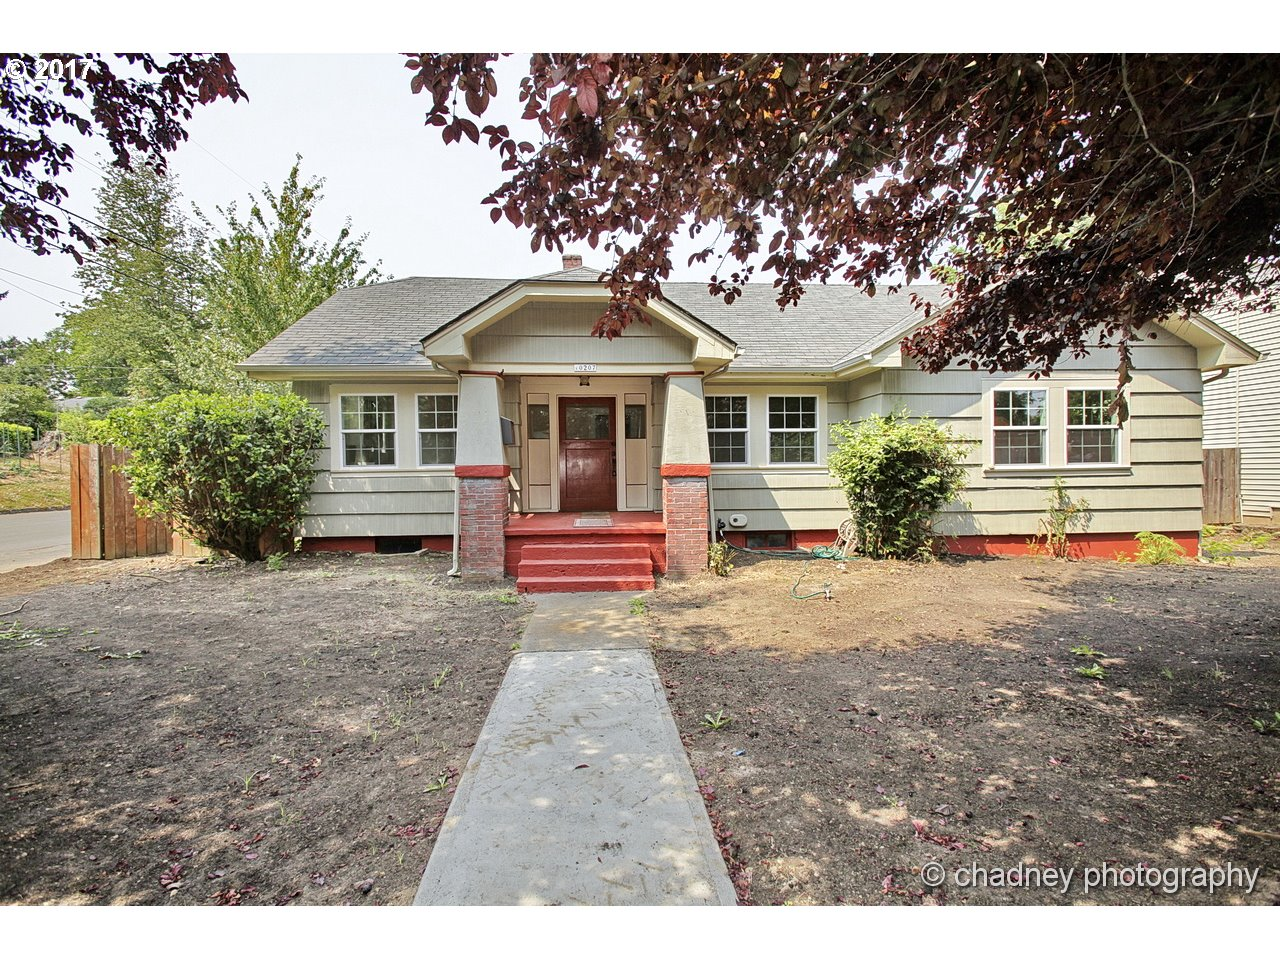 Wonderful refurbished Bungalow with lots of charm and room for all,4 bedrooms + den area,2 full baths (Master bath)Beautiful hardwoods throughout,New Vinyl windows,fresh paint,Trim work, built-ins,newer updated/remodeled kitchen,great open area for den/bonus room with open staircase, kitchen with nook,Custom interior bdr & back doors on order. Lg. corner lot and room for lg. shop/garage, freshly done 17 yds of 3 way soil sod/seed ready.